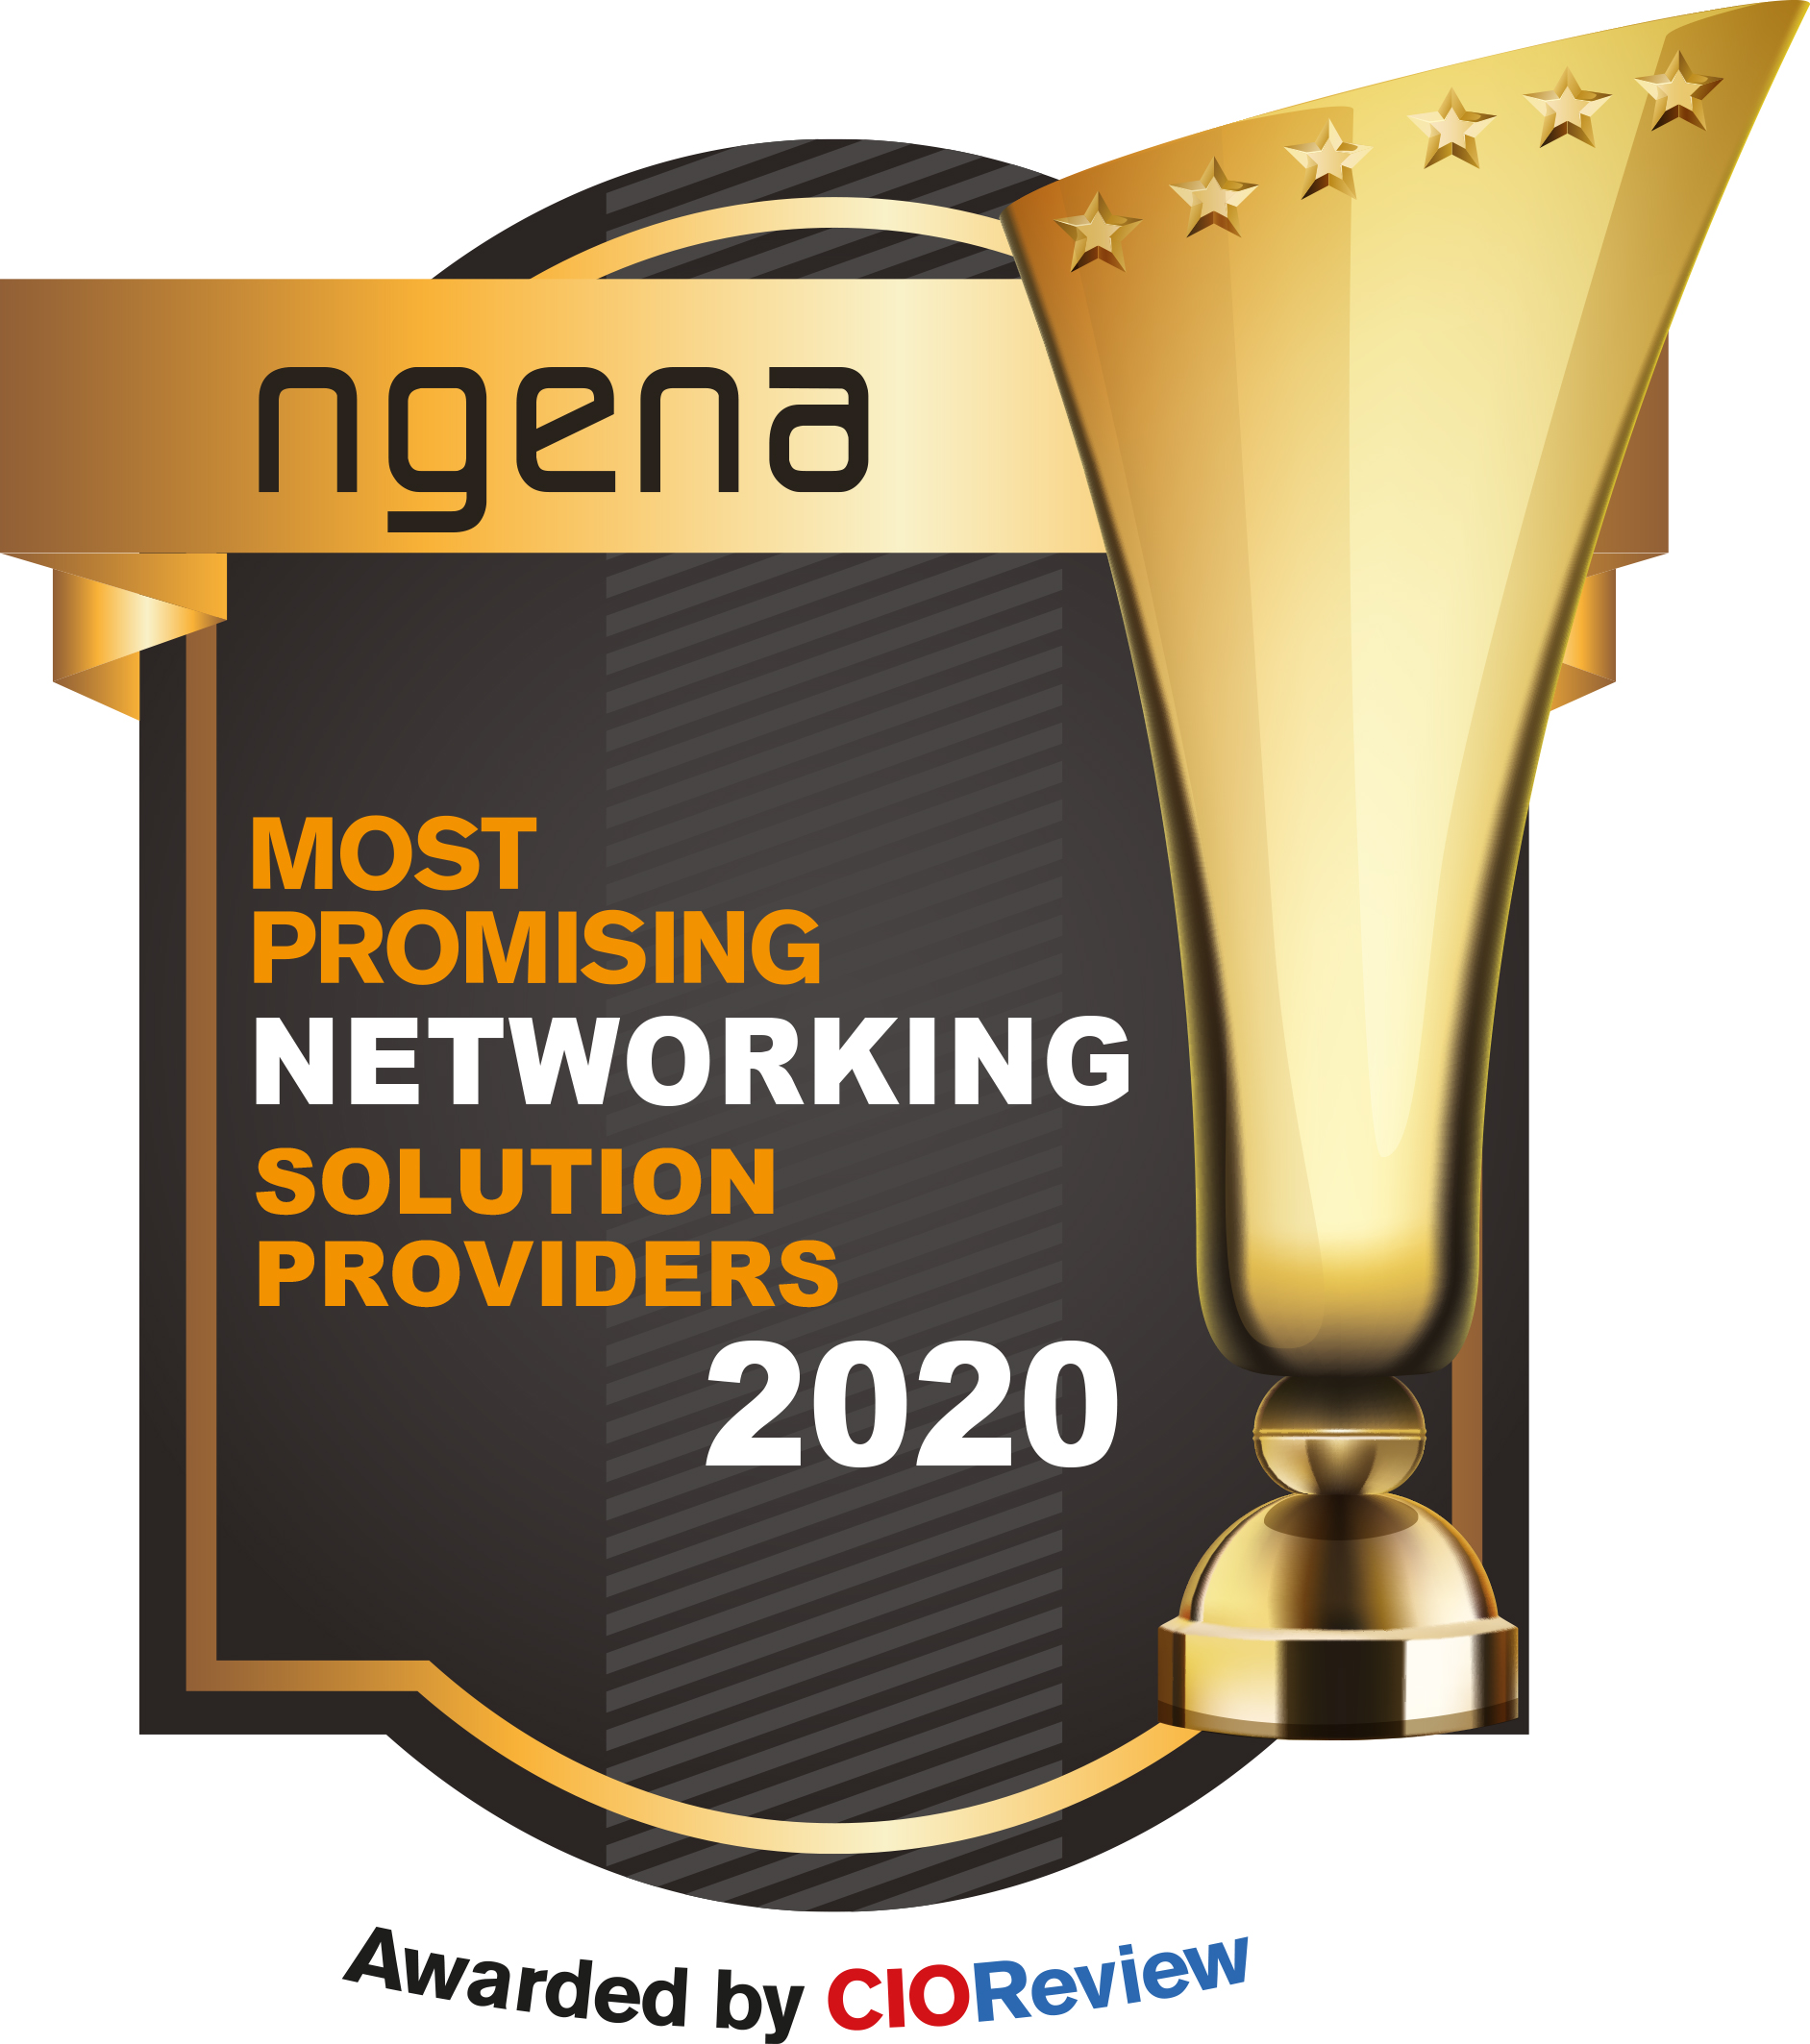 Top 10 Networking Solution Companies - 2020